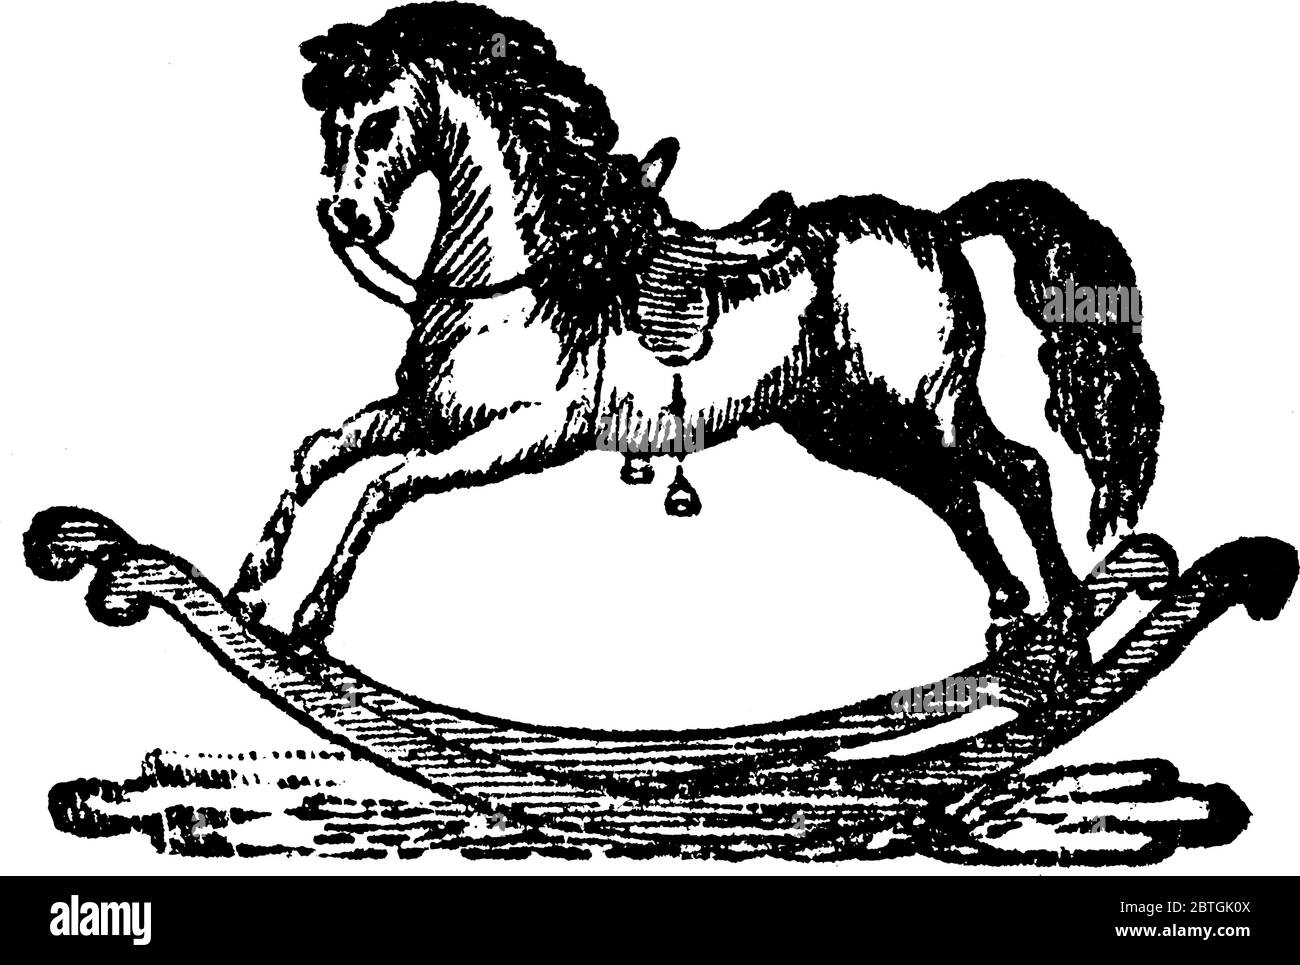 A Typical Representation Of A Toy Horse That Is Capable Of Rocking The Child Or Baby Riding It Vintage Line Drawing Or Engraving Illustration Stock Vector Image Art Alamy